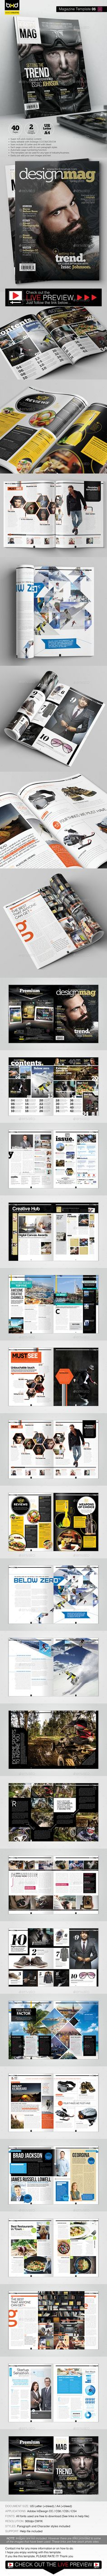 Magazine Template - InDesign 40 Page Layout V6 - #Magazines Print #Templates Download here: https://graphicriver.net/item/magazine-template-indesign-40-page-layout-v6/10374588?ref=alena994